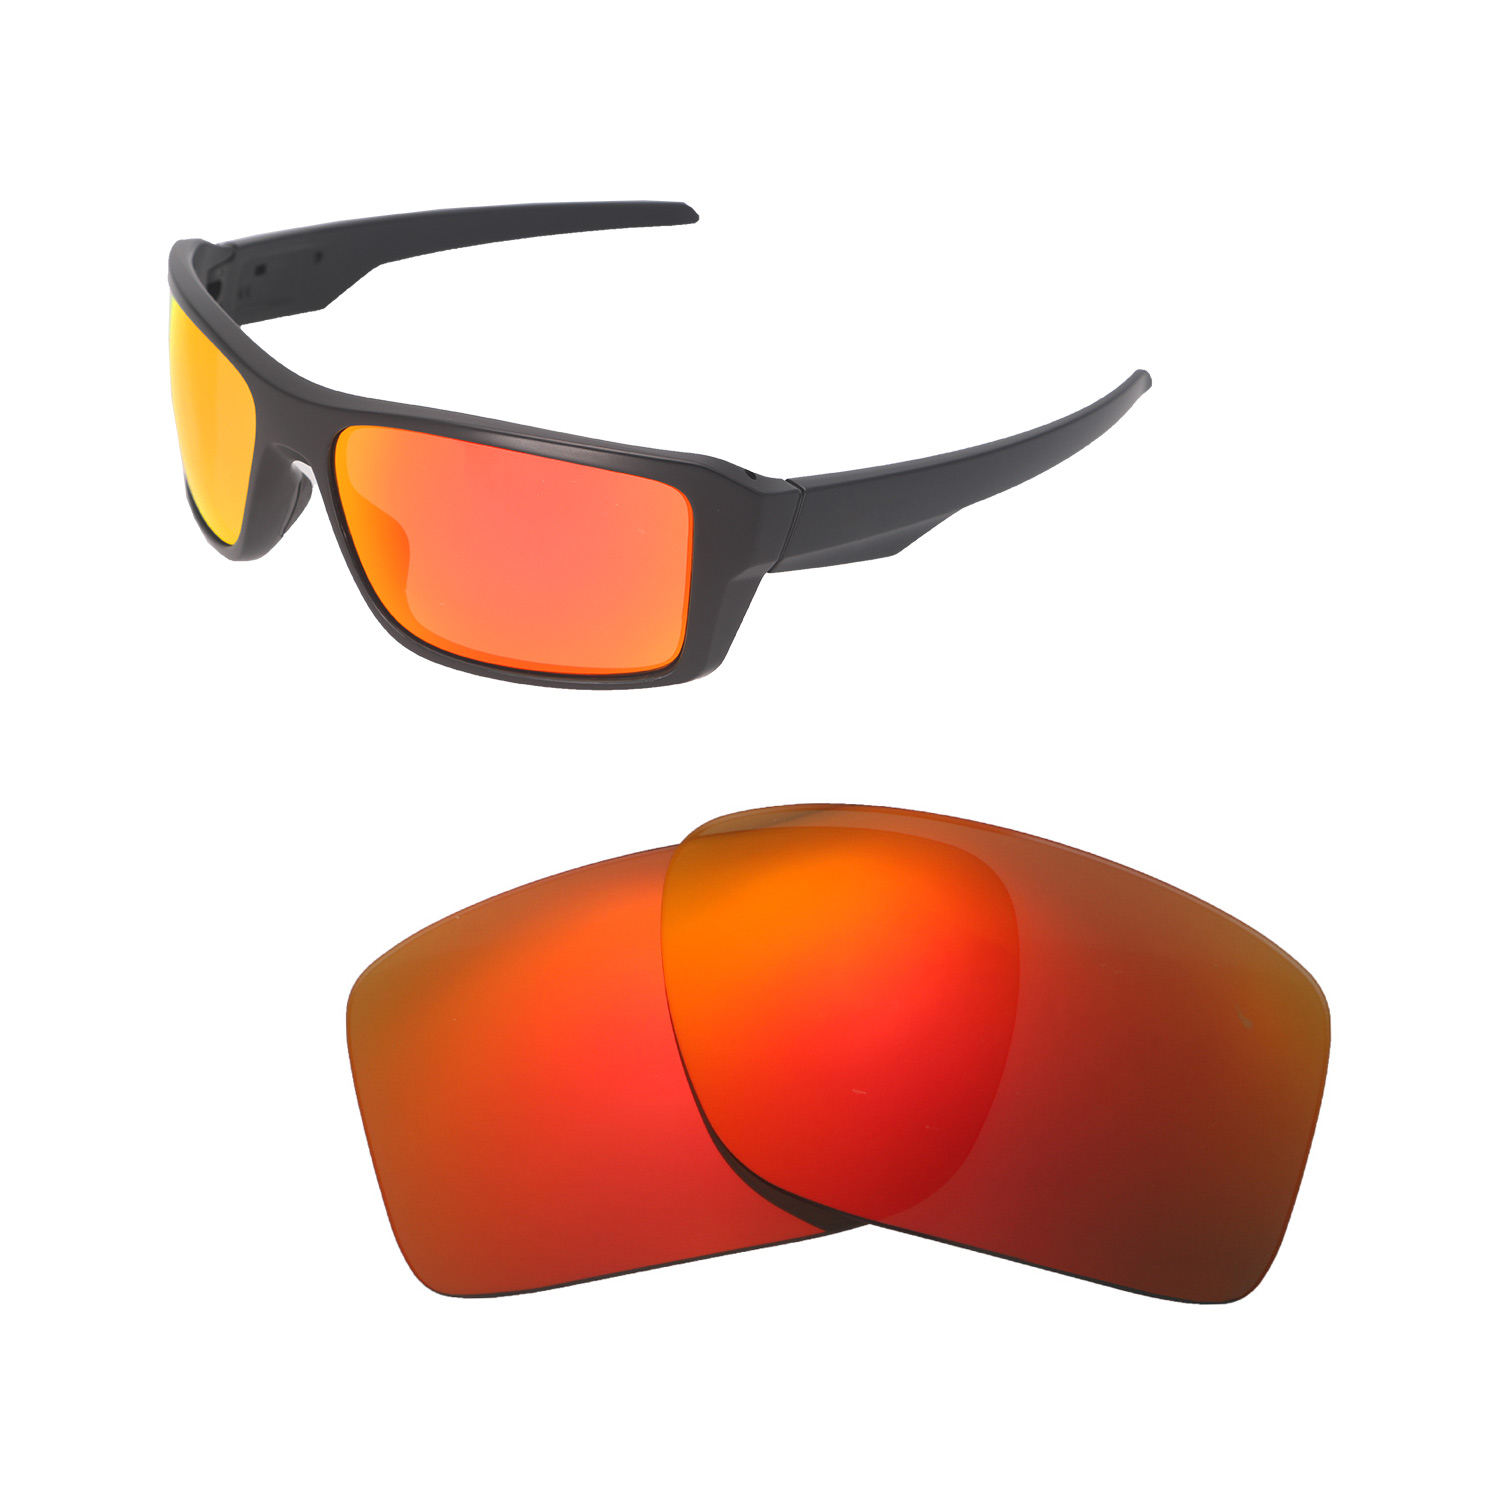 24ad456375 Details about Walleva Fire Red Polarized Replacement Lenses For Oakley  Double Edge Sunglasses